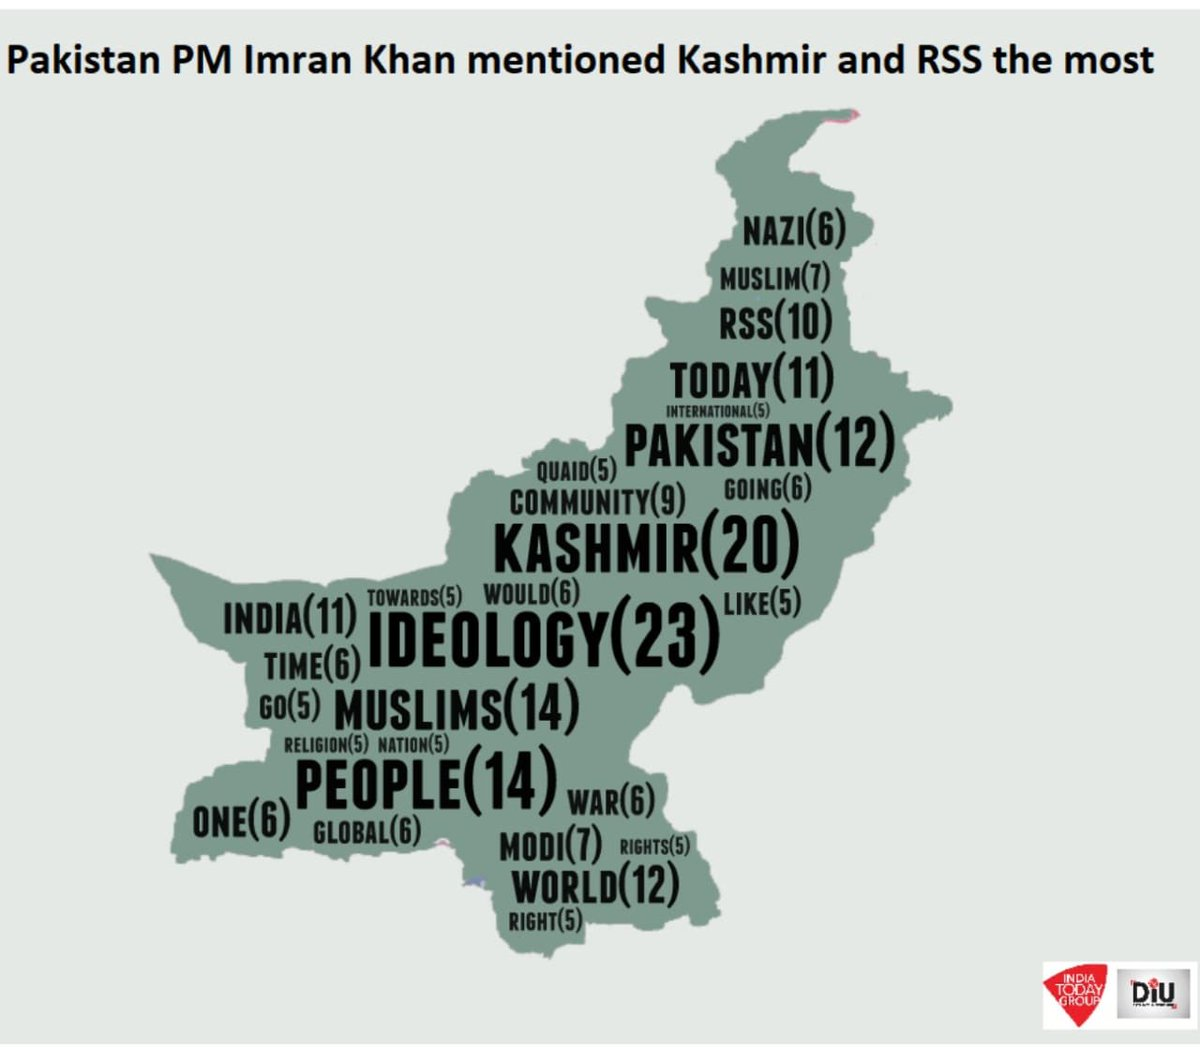 #SpeechAnalytica #IndependenceDay2019In his Independence Day address @imrankhanpti spoke about Modi 7 times, India 11 times & RSS 10 times. In contrast @narendramodi gave Pakistan the royal ignore and didn't even bother mentioning Pak or @ImranKhanPTI  https://www.indiatoday.in/diu/story/independence-day-imran-khan-speech-pm-modi-no-mention-pakistan-1581128-2019-08-15?utm_source=it_sticky_footer…